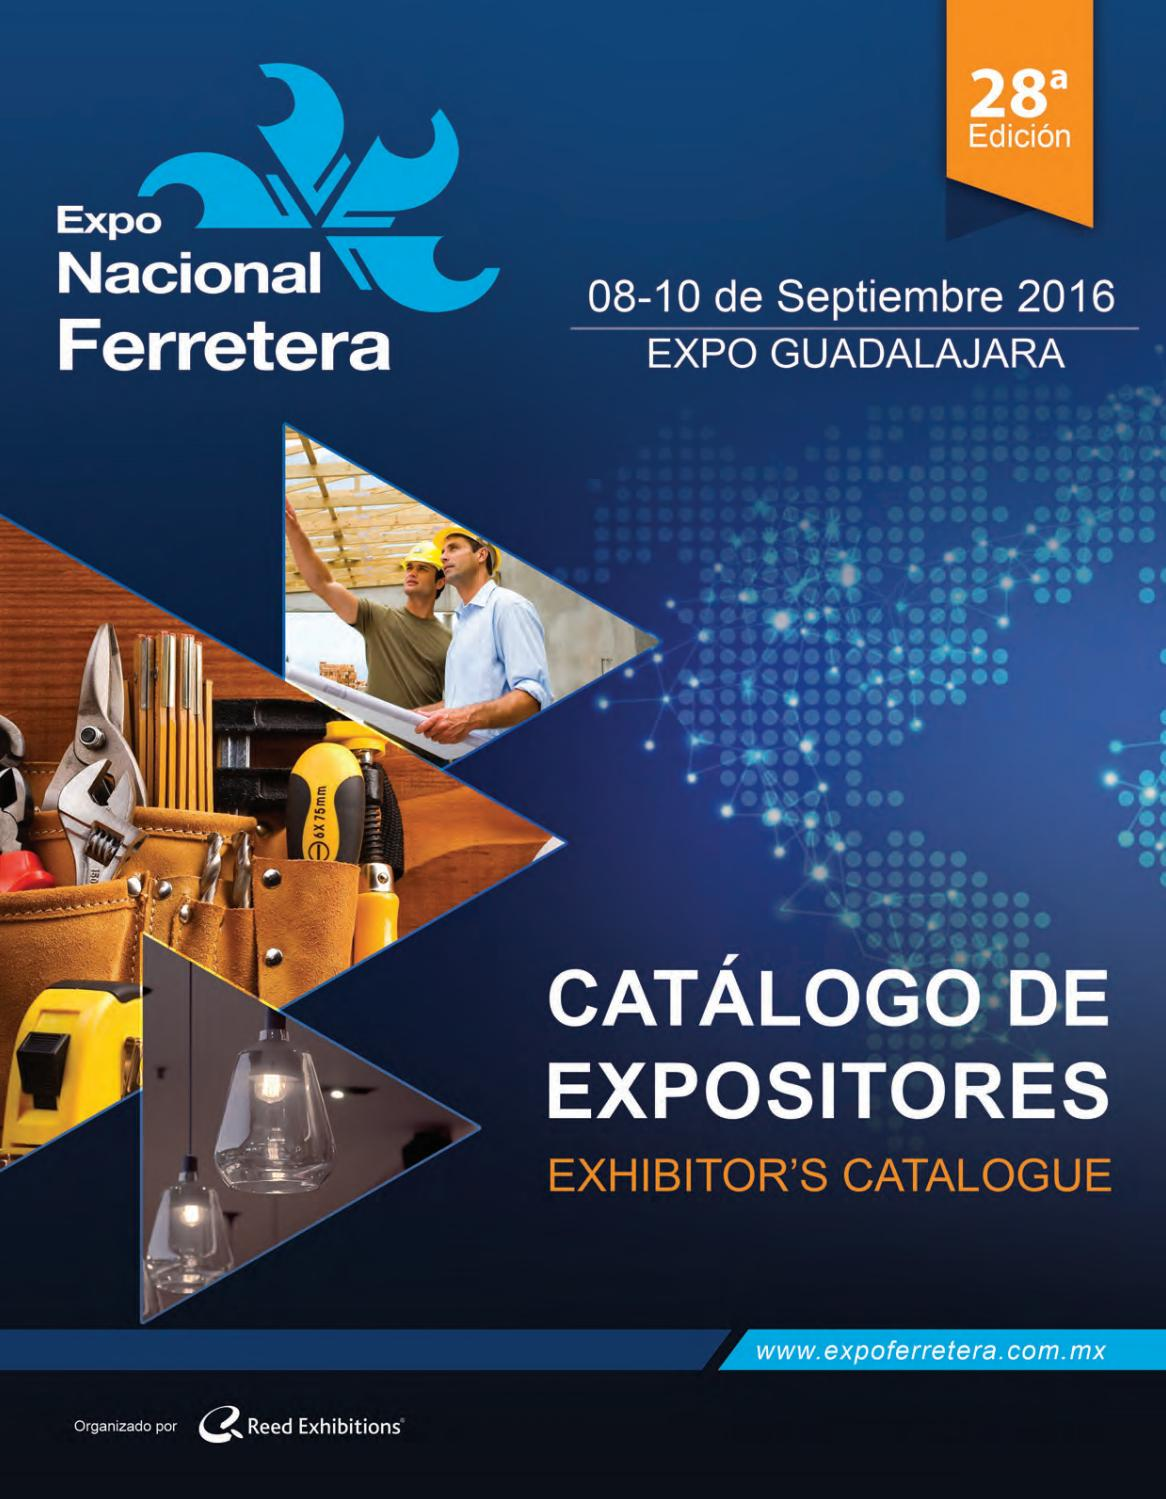 Expo Nacional Ferretera Cat Logo De Expositores 2016 By Reed  # Muebles Lira Gold